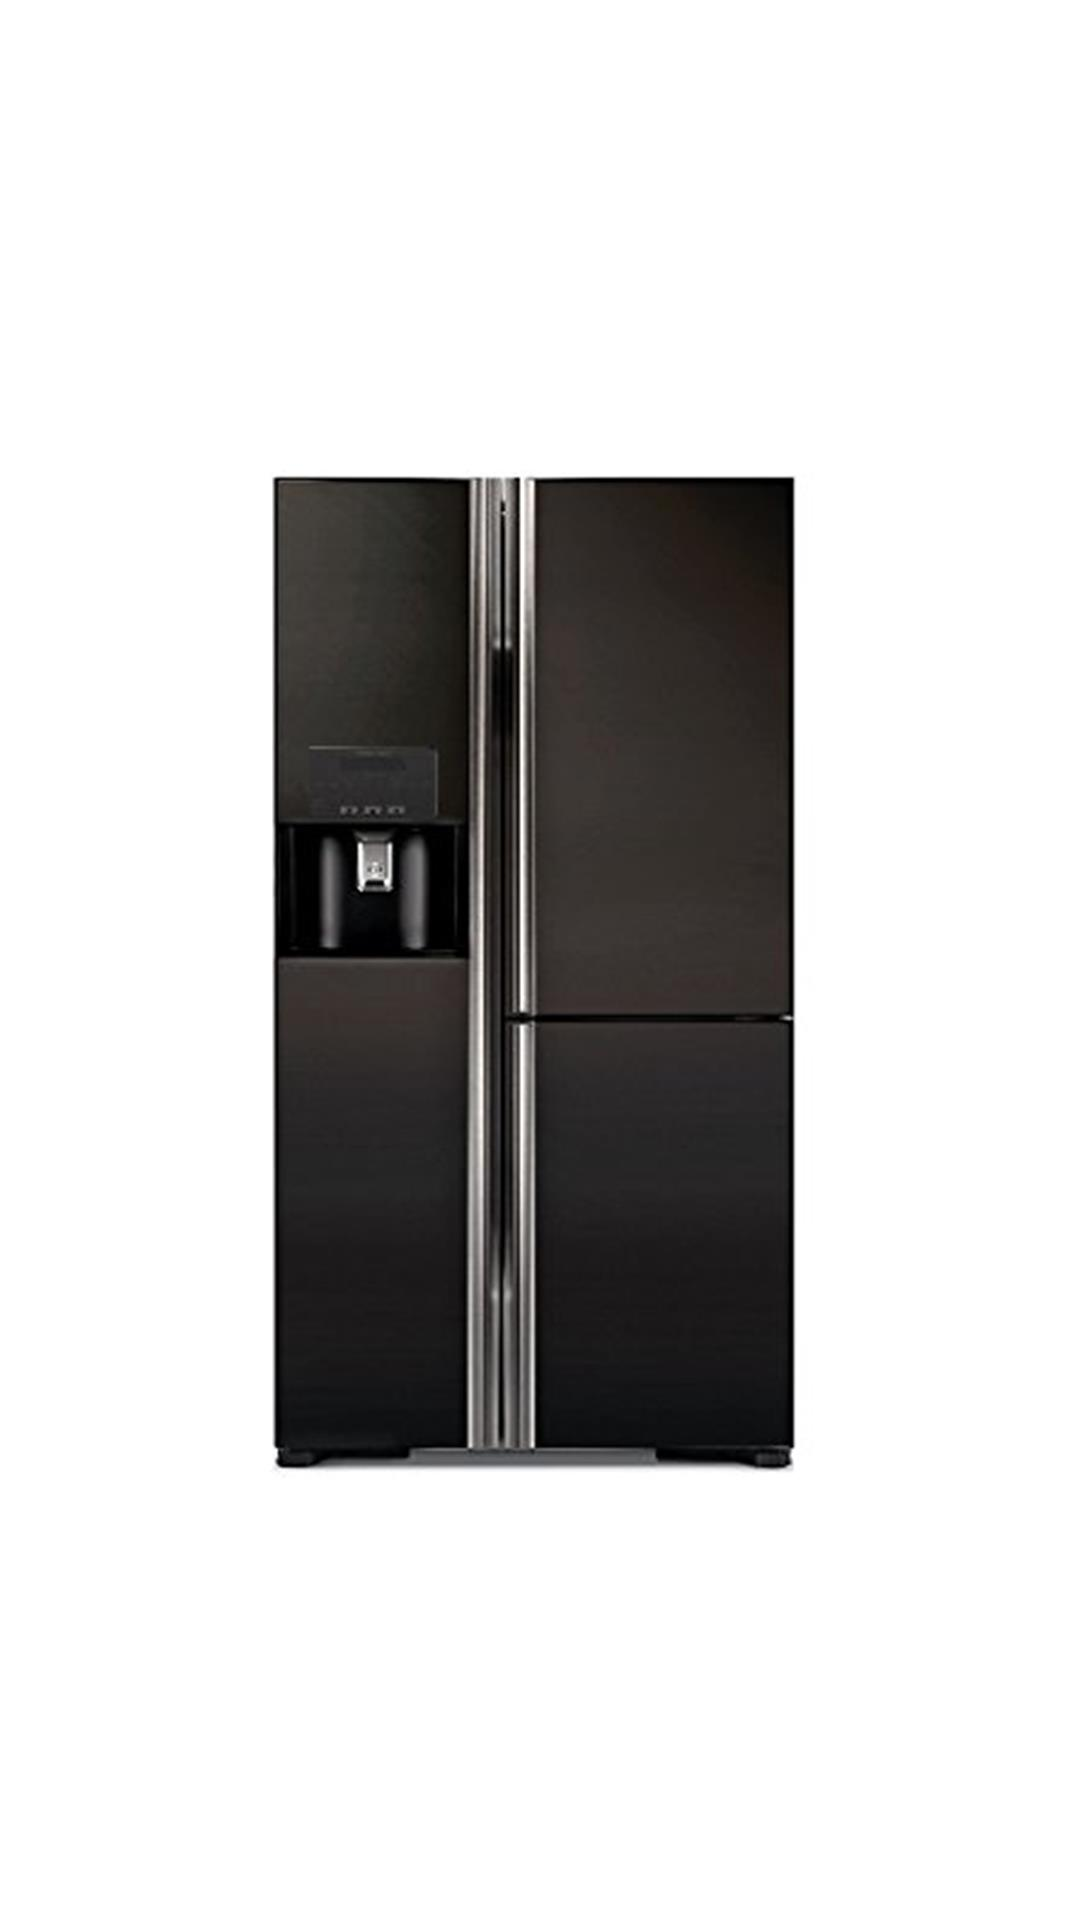 Hitachi 651 L Side By Side Refrigerator (Glass Black) - R-M700GPND2 - (GBK)